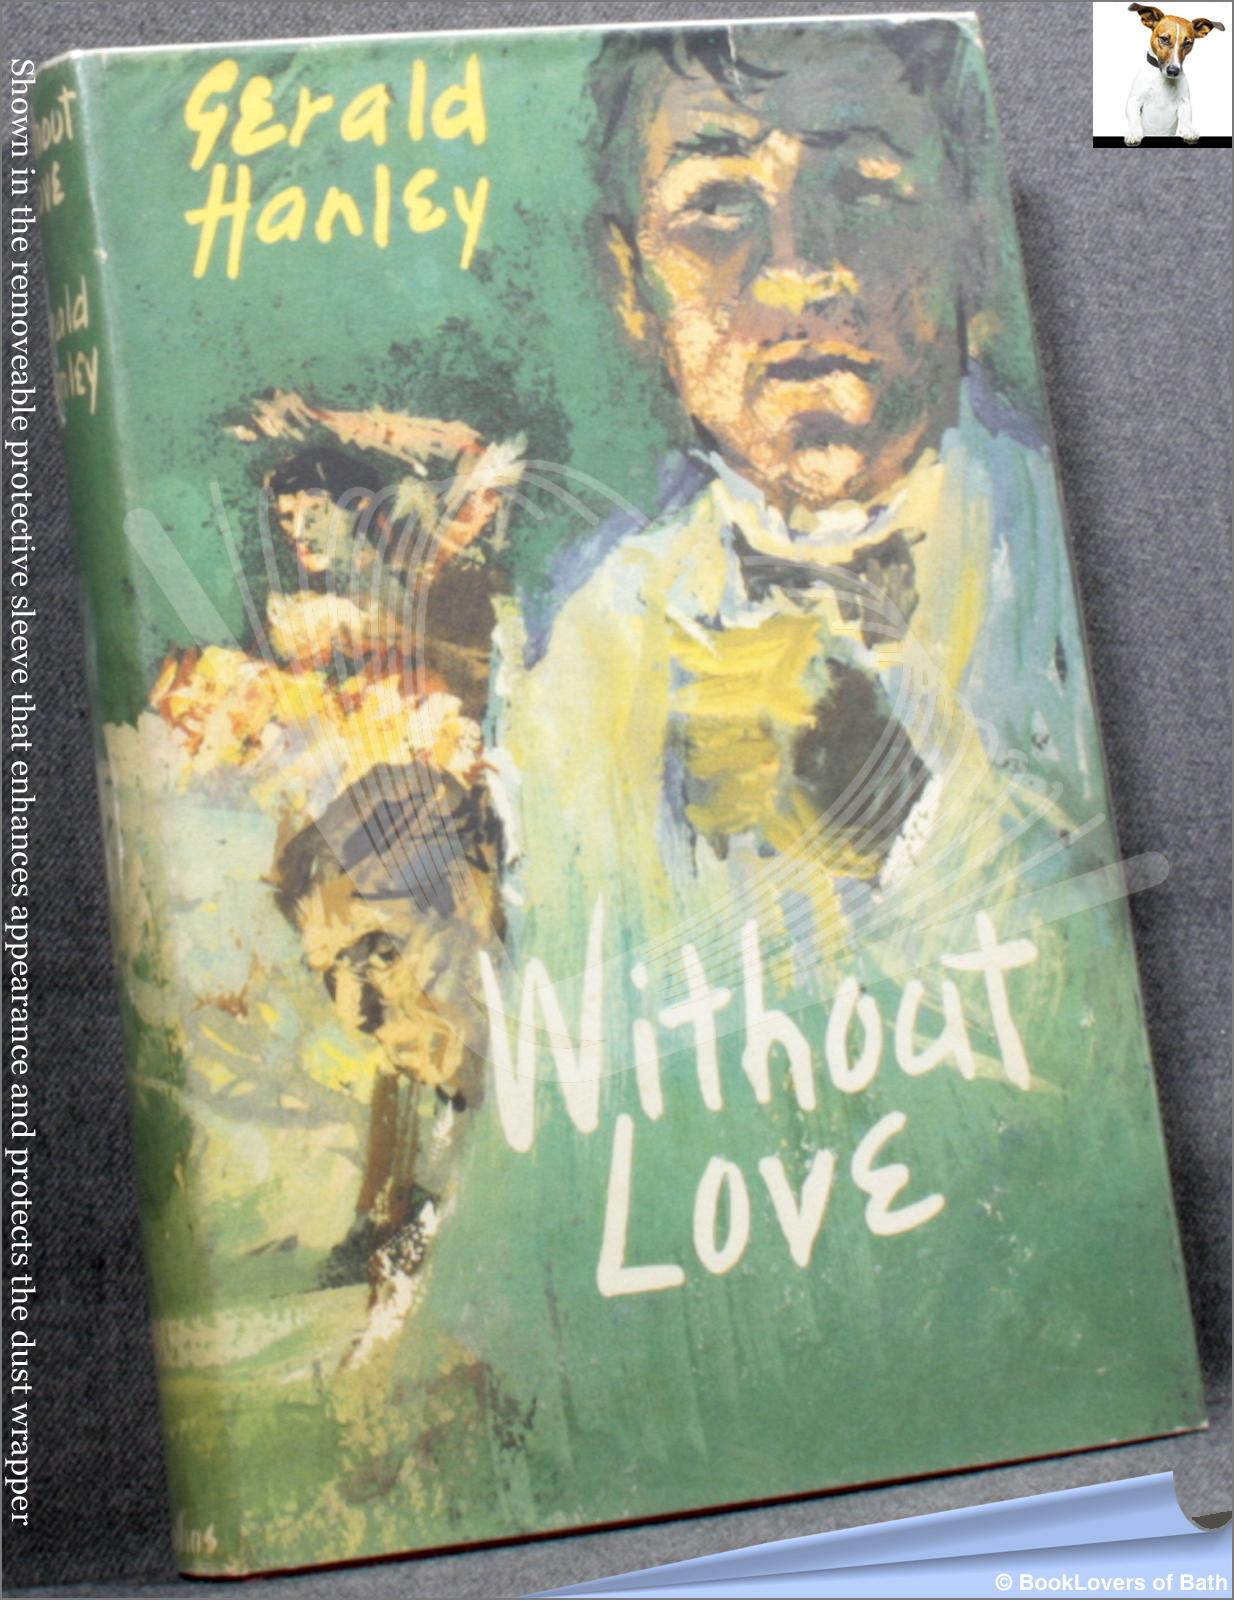 Without Love - Gerald Hanley